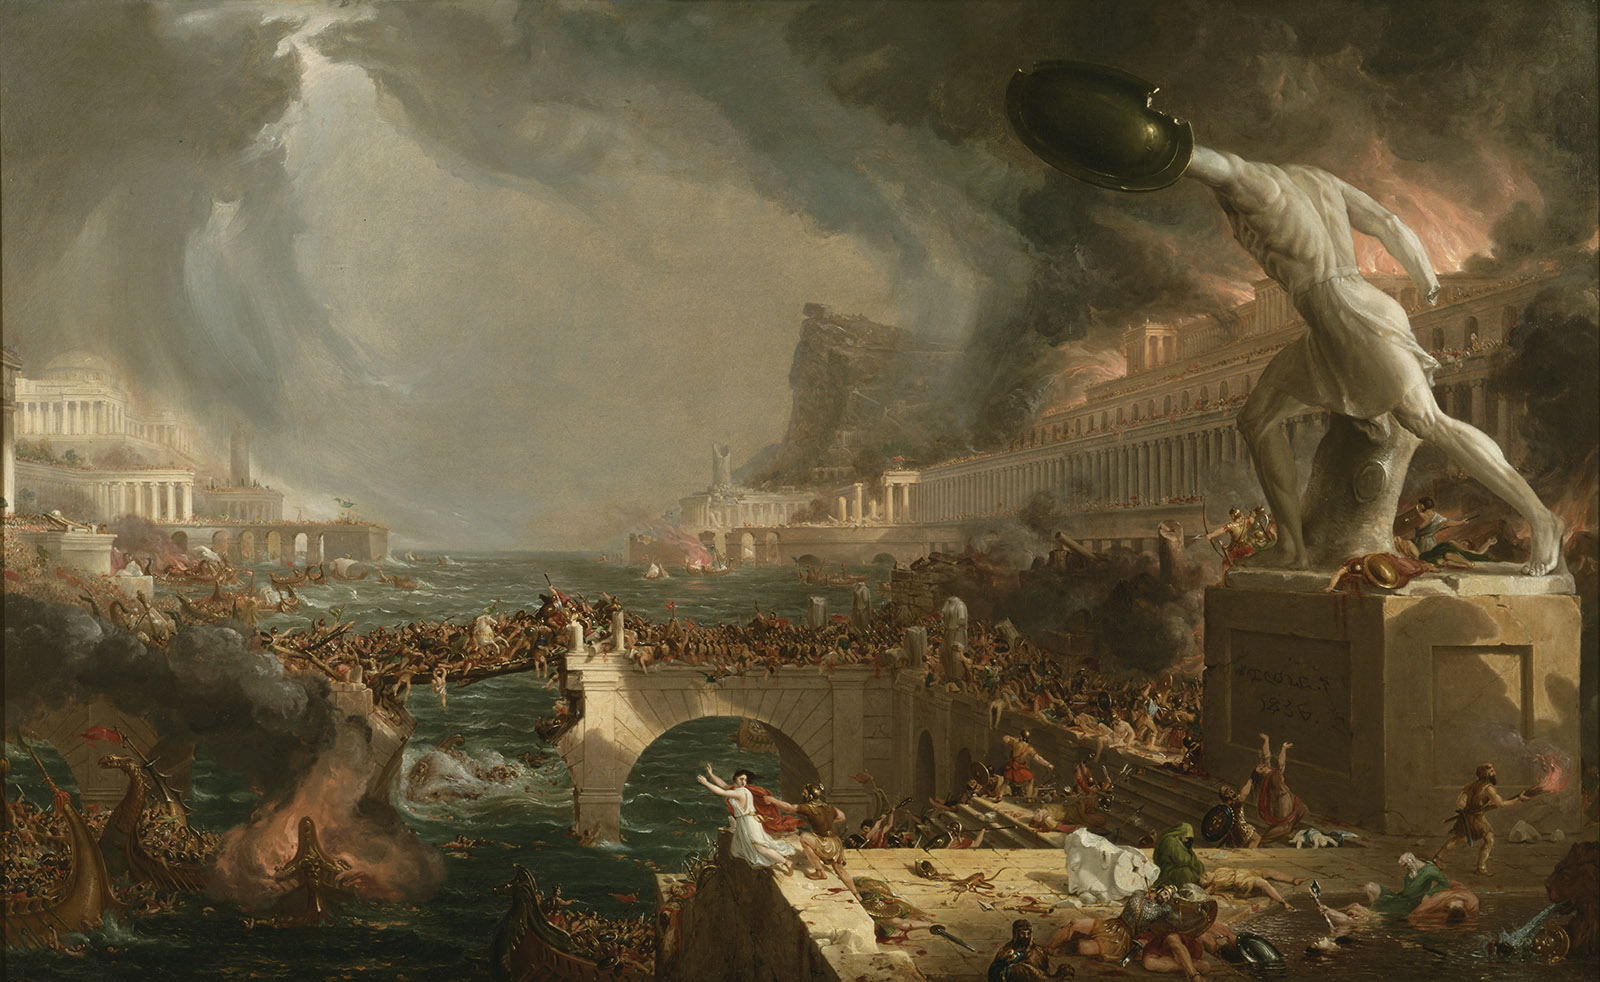 The Course of Empire: Destruction, 1836 (oil on canvas)